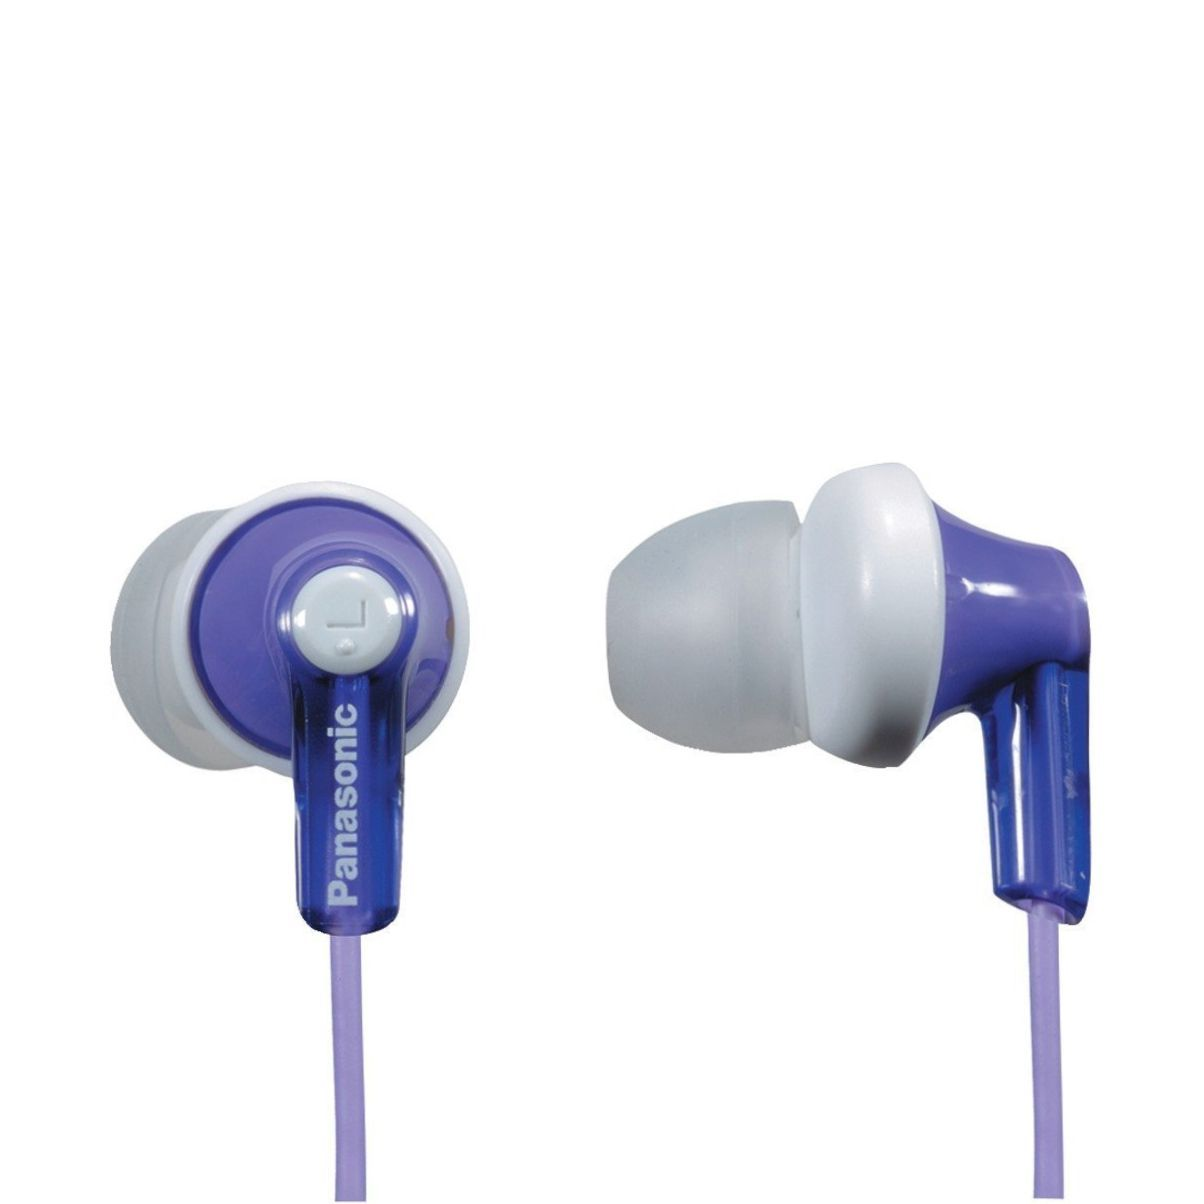 Earbuds sony remote - dual driver earbuds sony